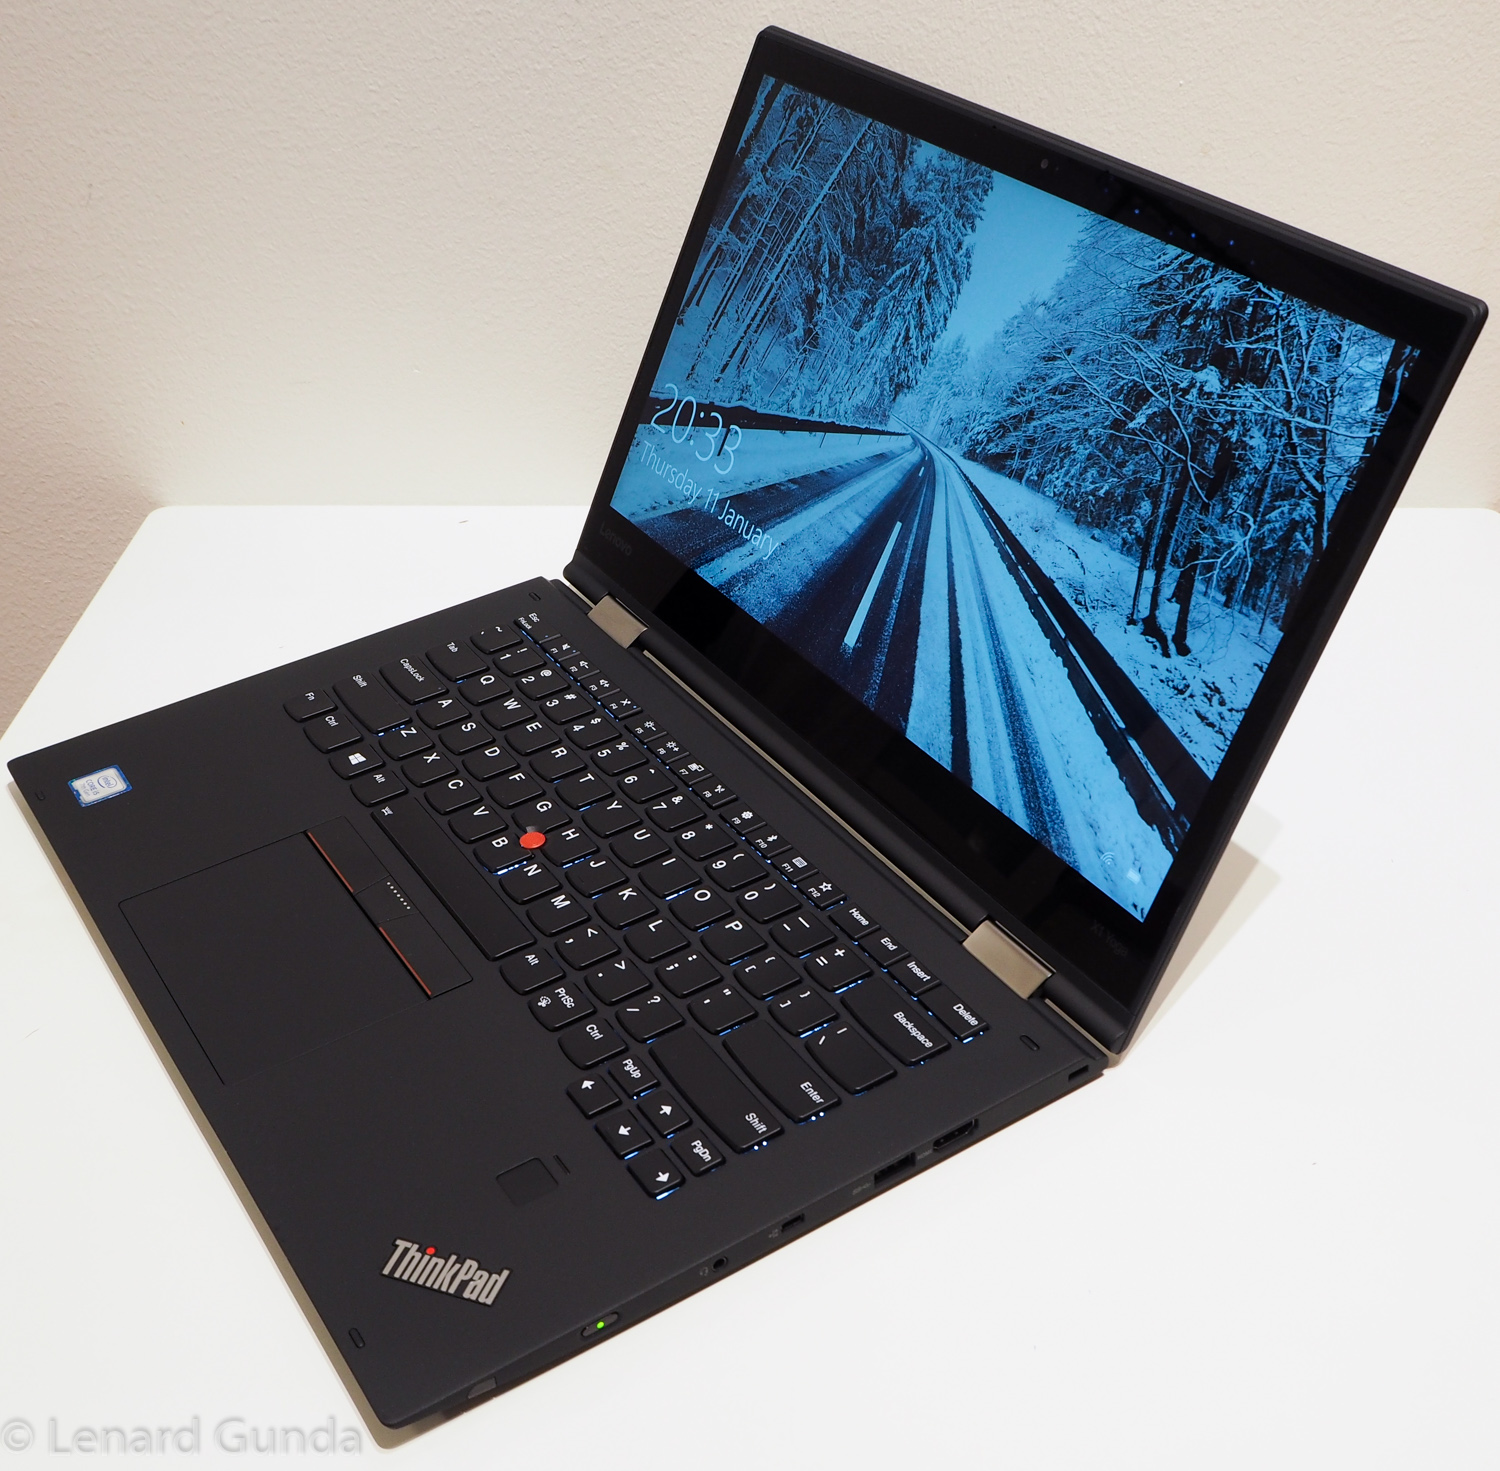 ThinkPad X1 Yoga (2nd gen) review - LenardGunda com